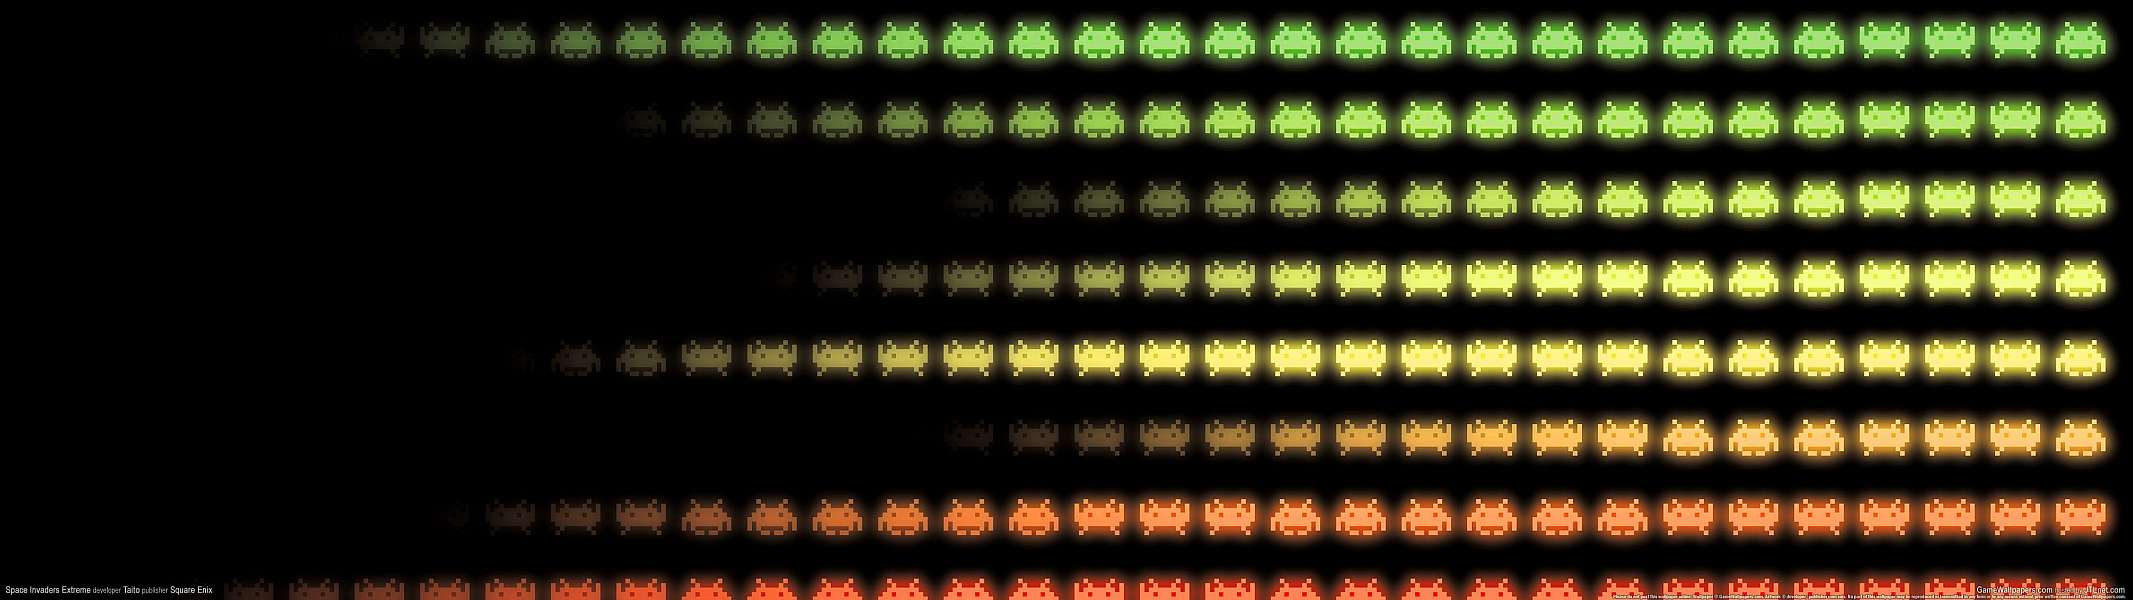 Space Invaders Extreme dual screen wallpaper or background